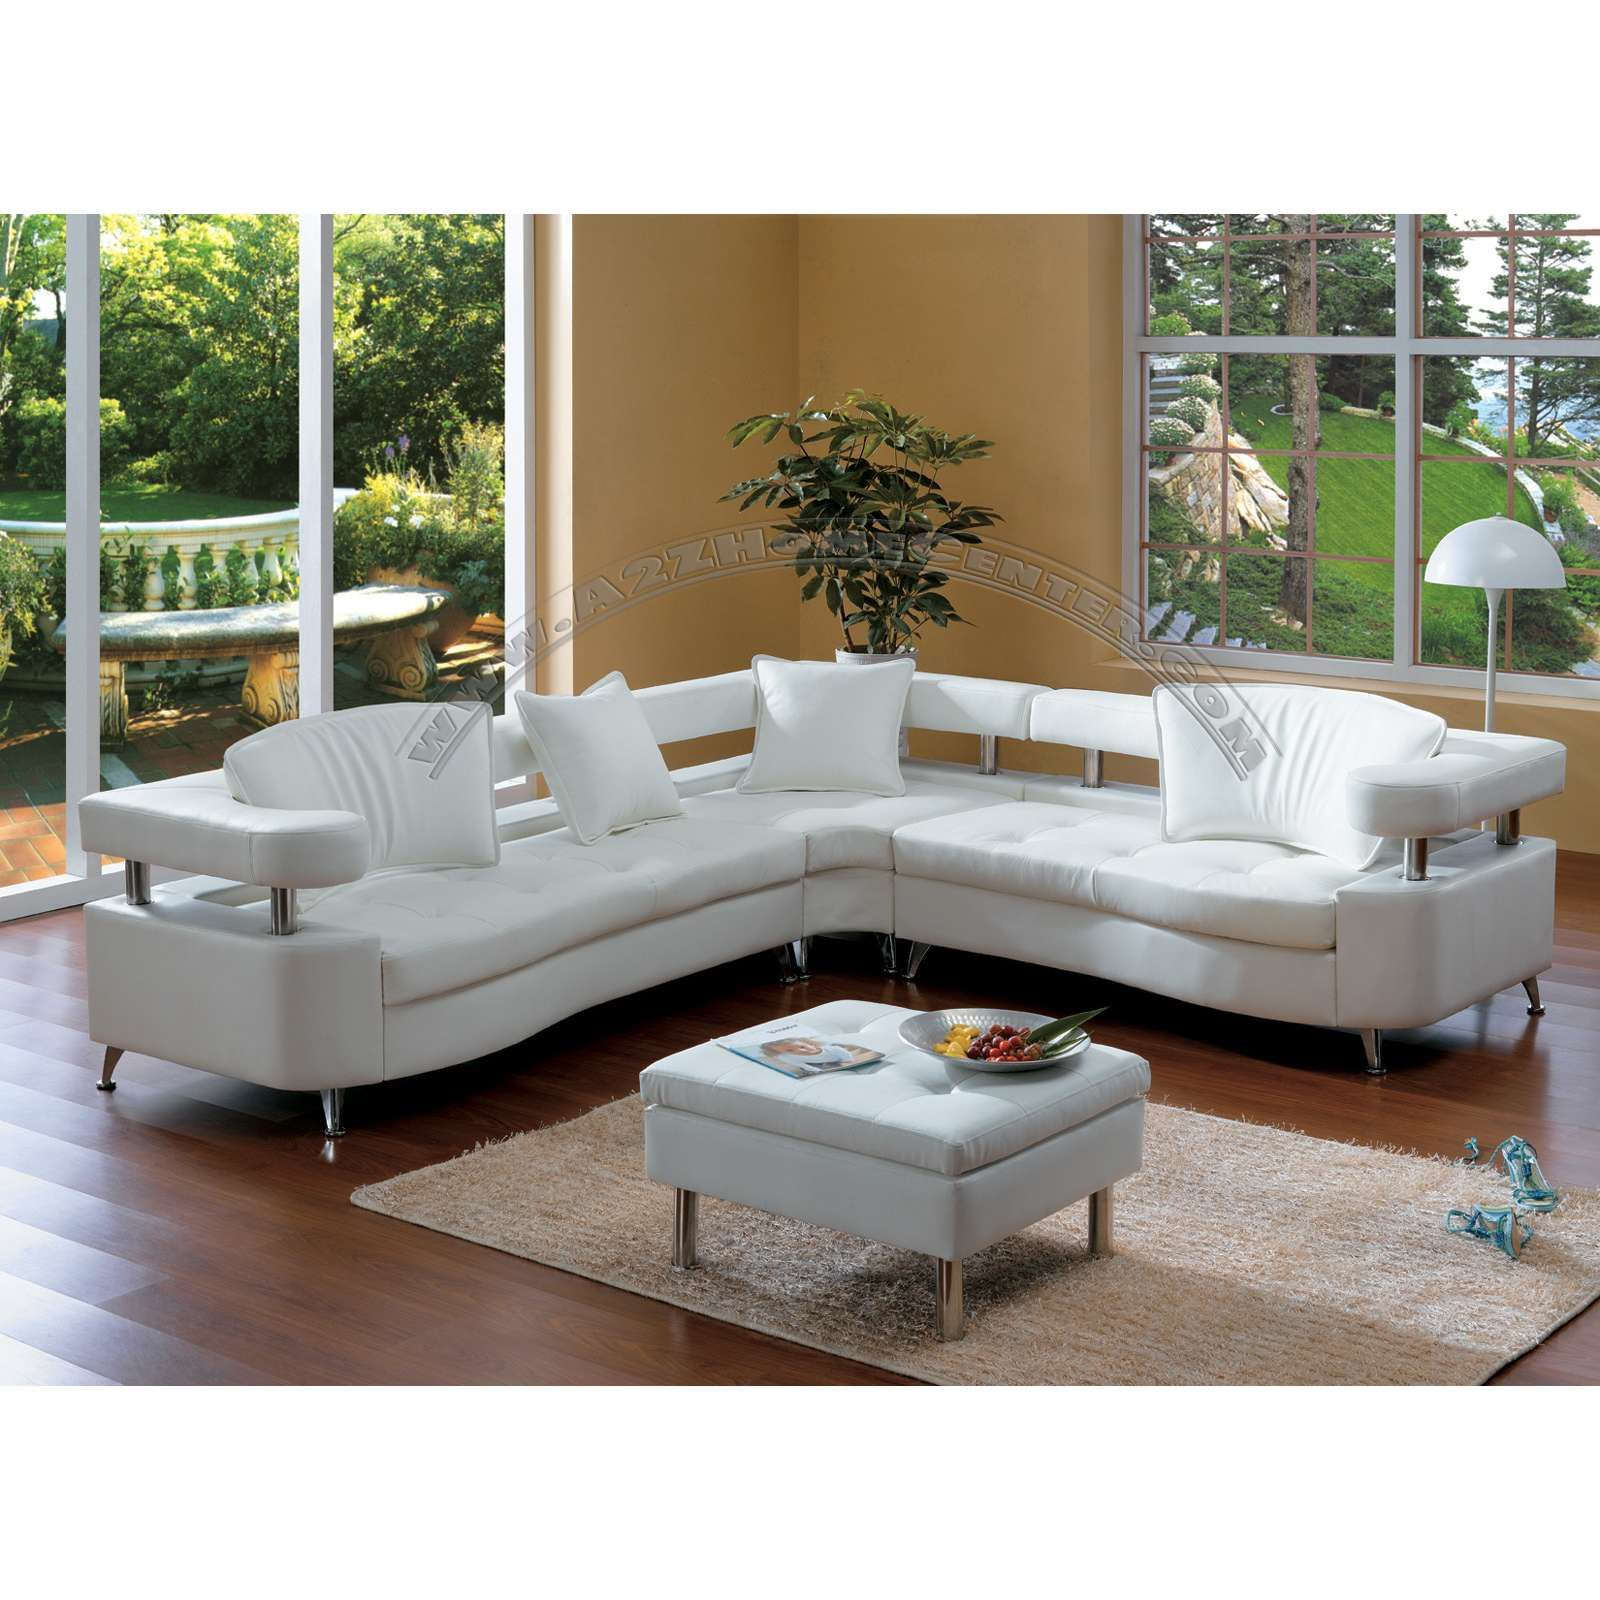 Leather Sectional Sofa Modern Furniture For More Pictures And Design Ideas Please Visit My Blog